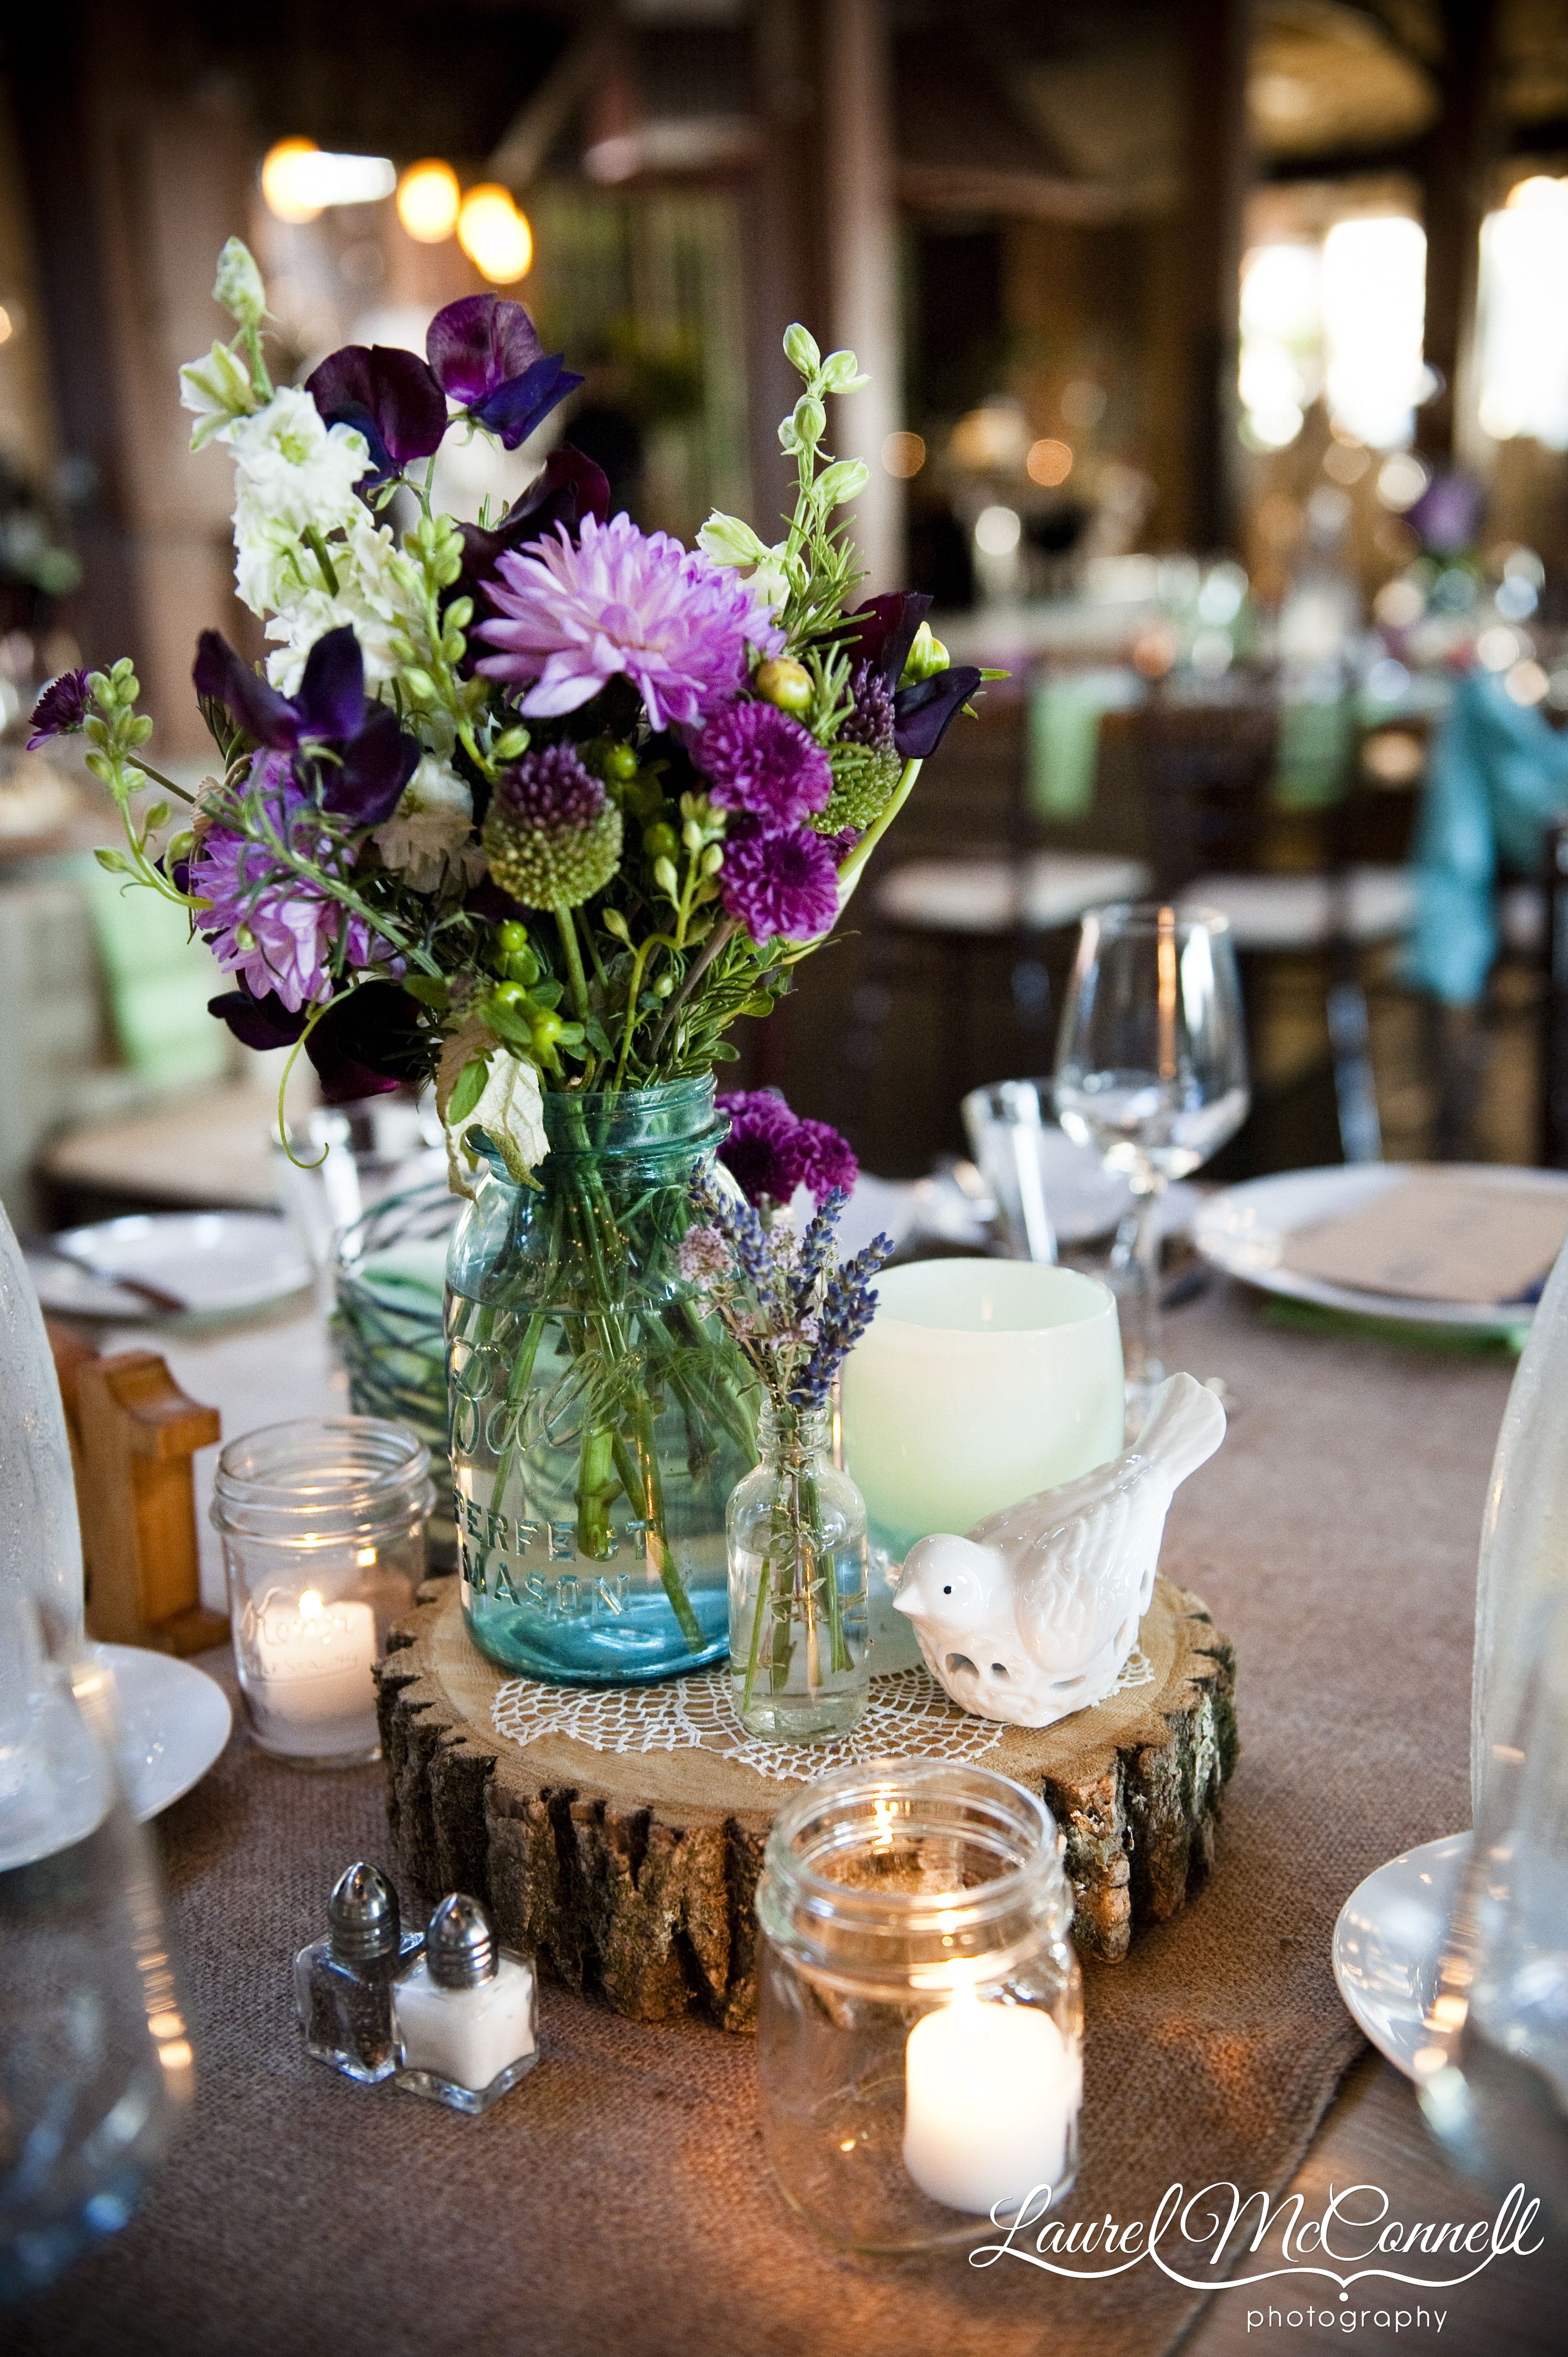 Wood Rounds Centerpieces - The final centerpiece was a wood slice with a vintage blue ball jar of flowers